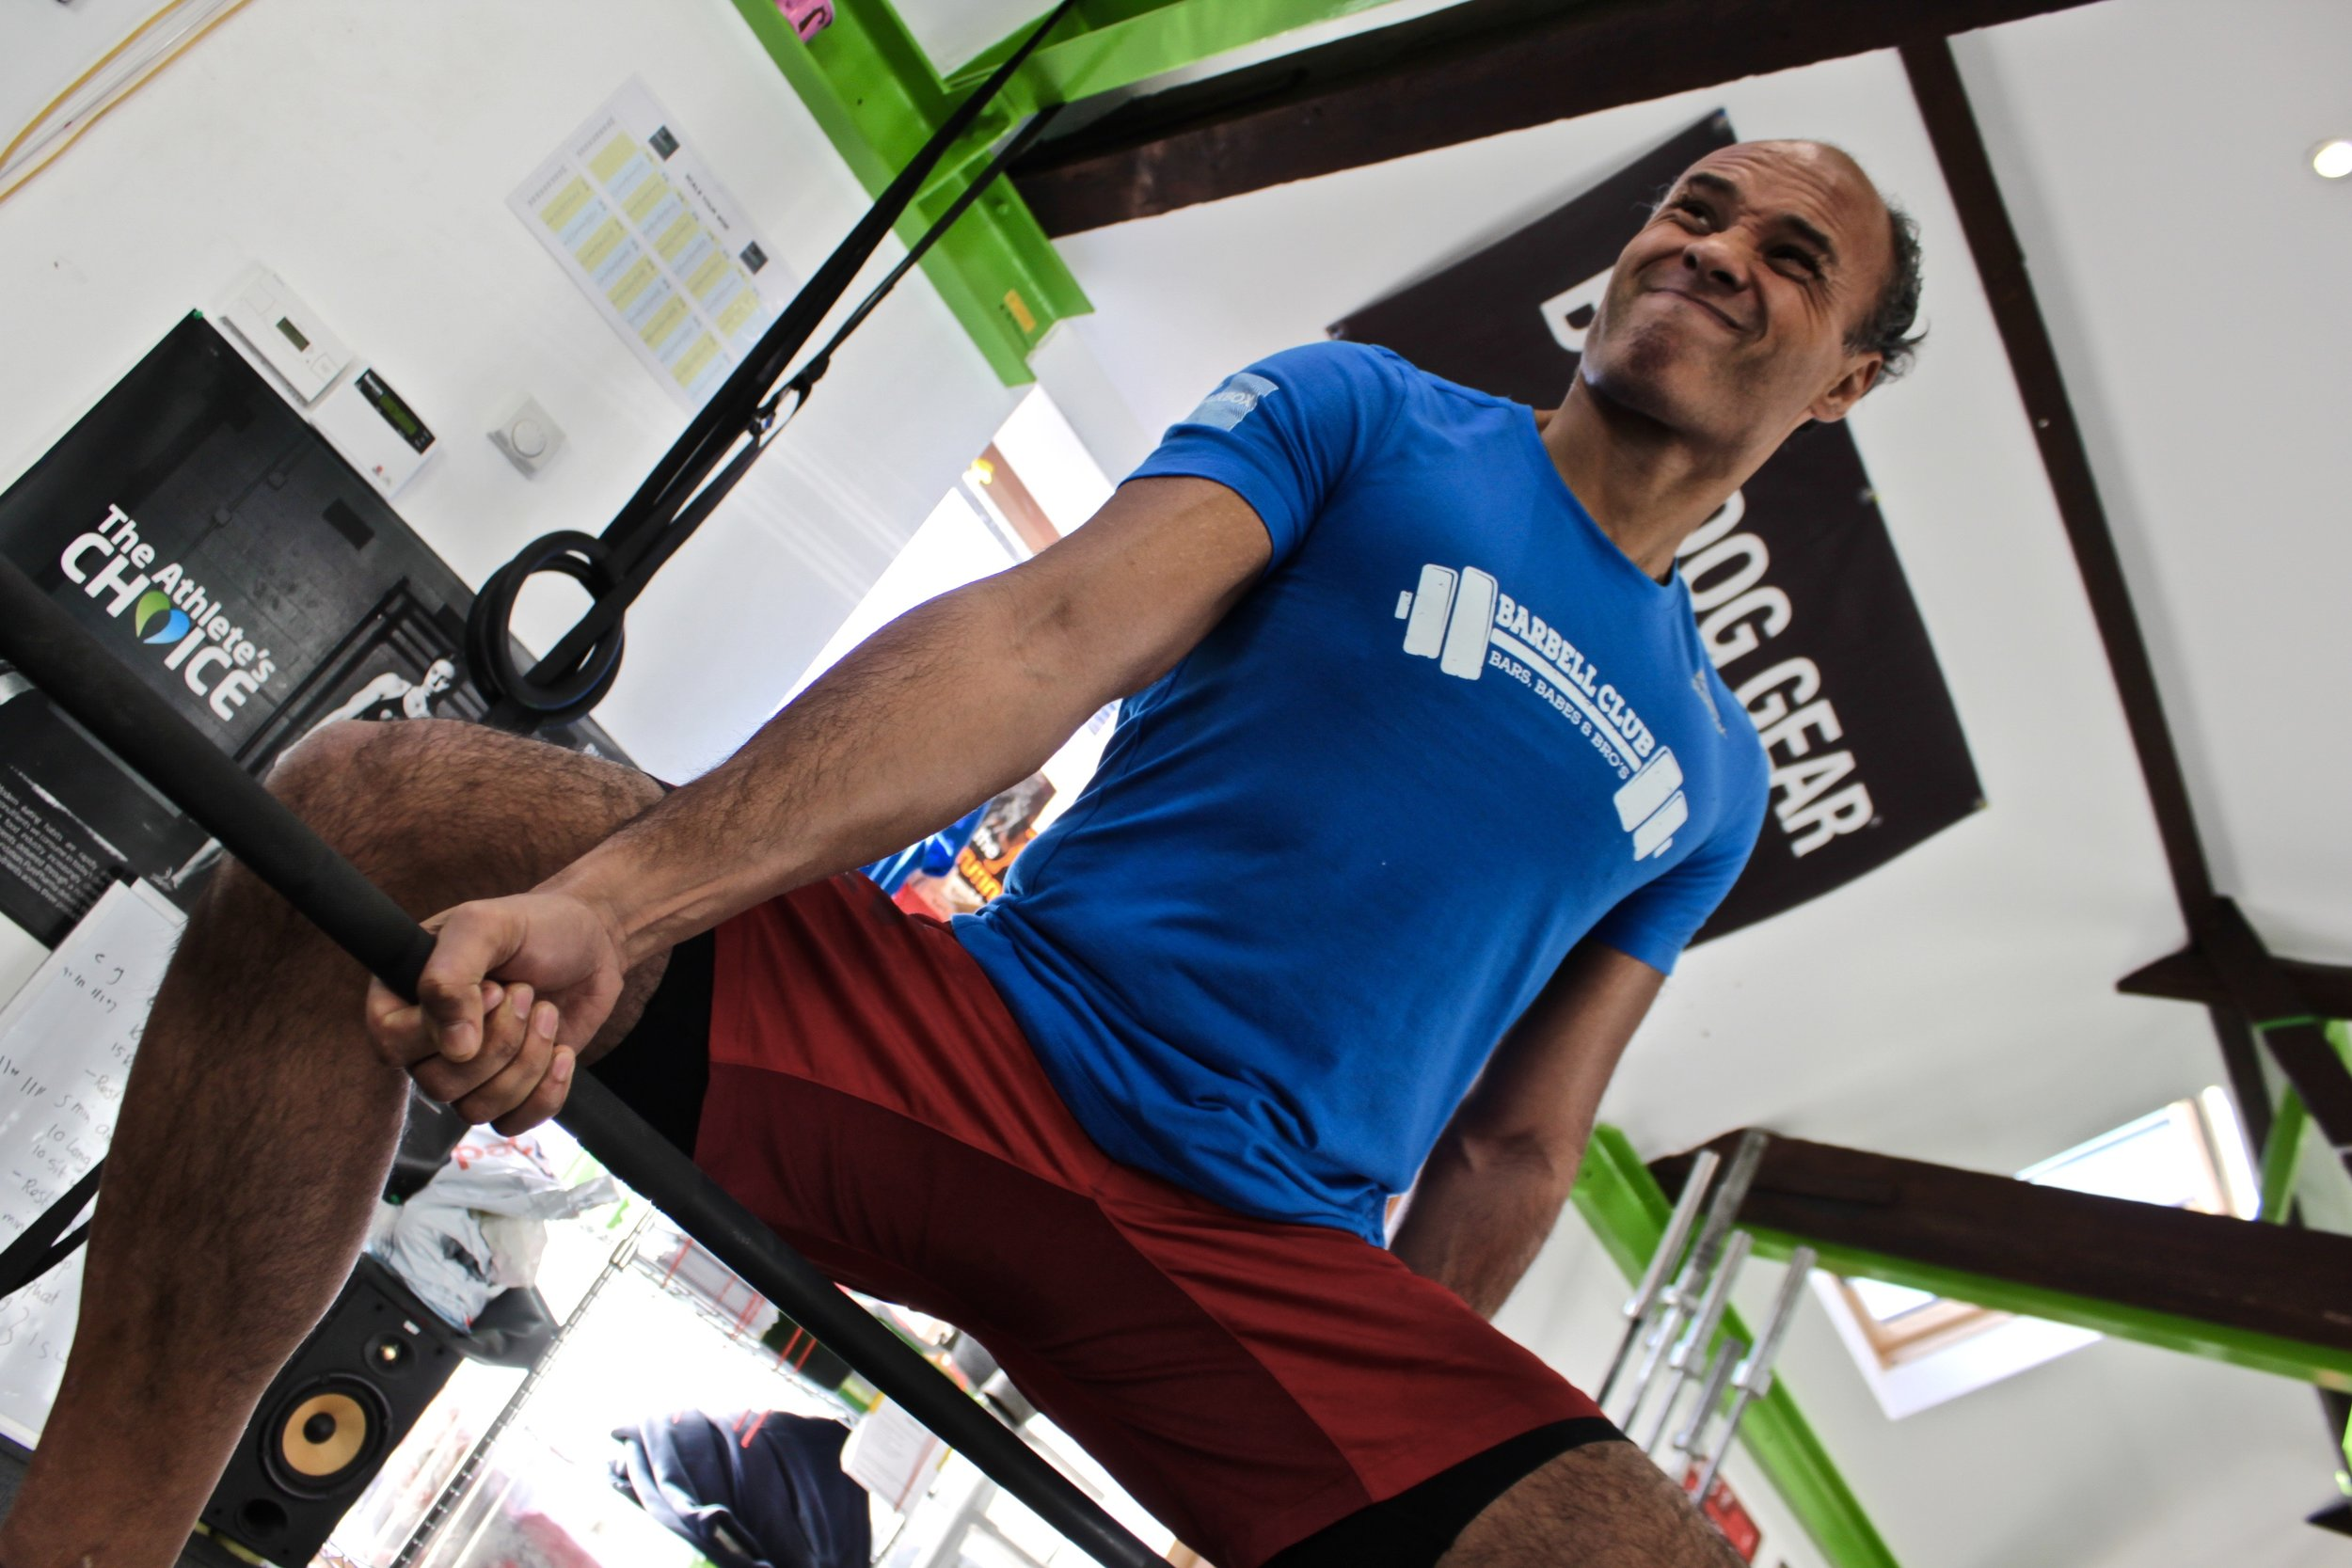 Coach Iskandar:  Started CrossFit in 2012. Combines his athletic life with an office job.Got a passion to create better moving humans. CrossFit Level 1, CrossFit Level 2, CrossFit Mobility, British Weight Lifting Coaching Level 1, British Weight Lifting Coaching Level 2, StrongFit follower, CrossFit Endurance.